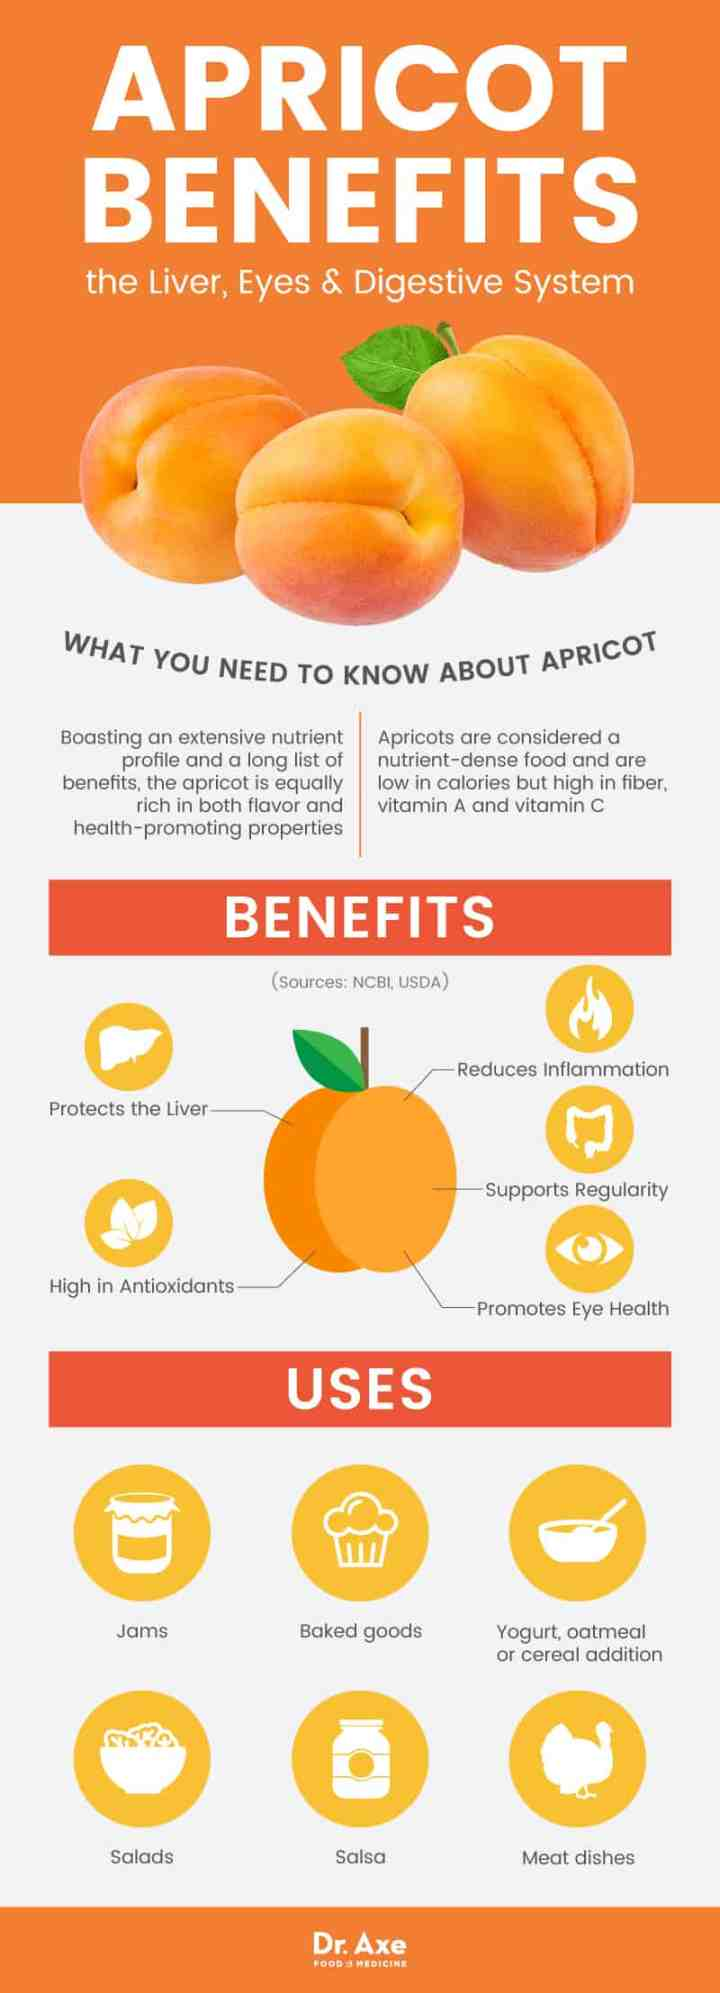 Apricot benefits - Dr. Axe